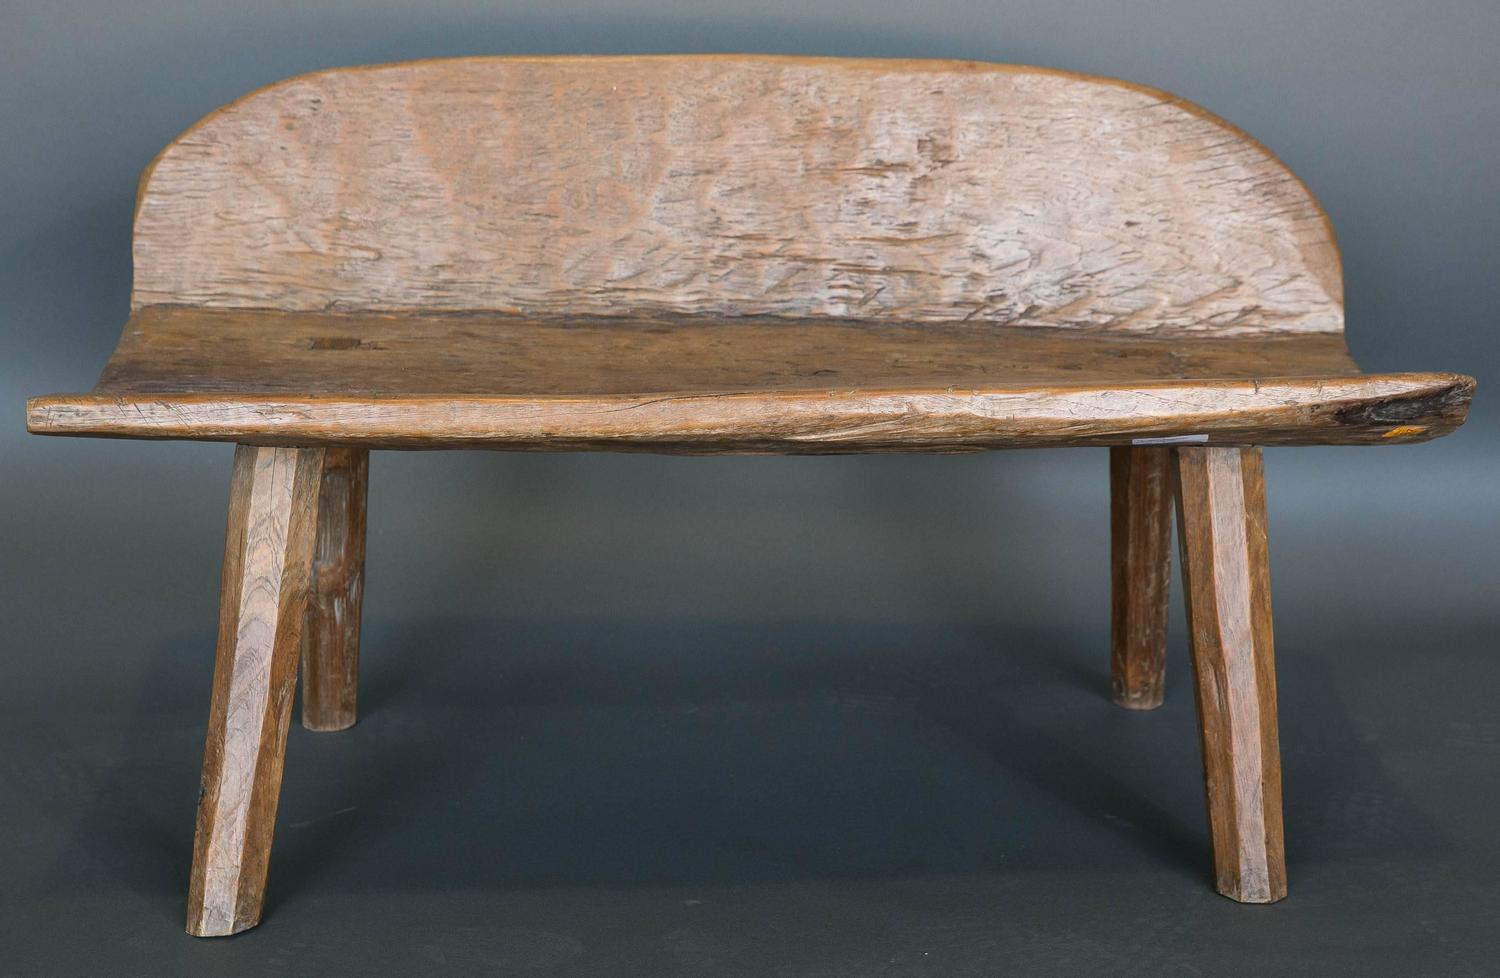 Antique 18th Century Primitive Bench From Spanish Pyrenees For Sale At 1stdibs